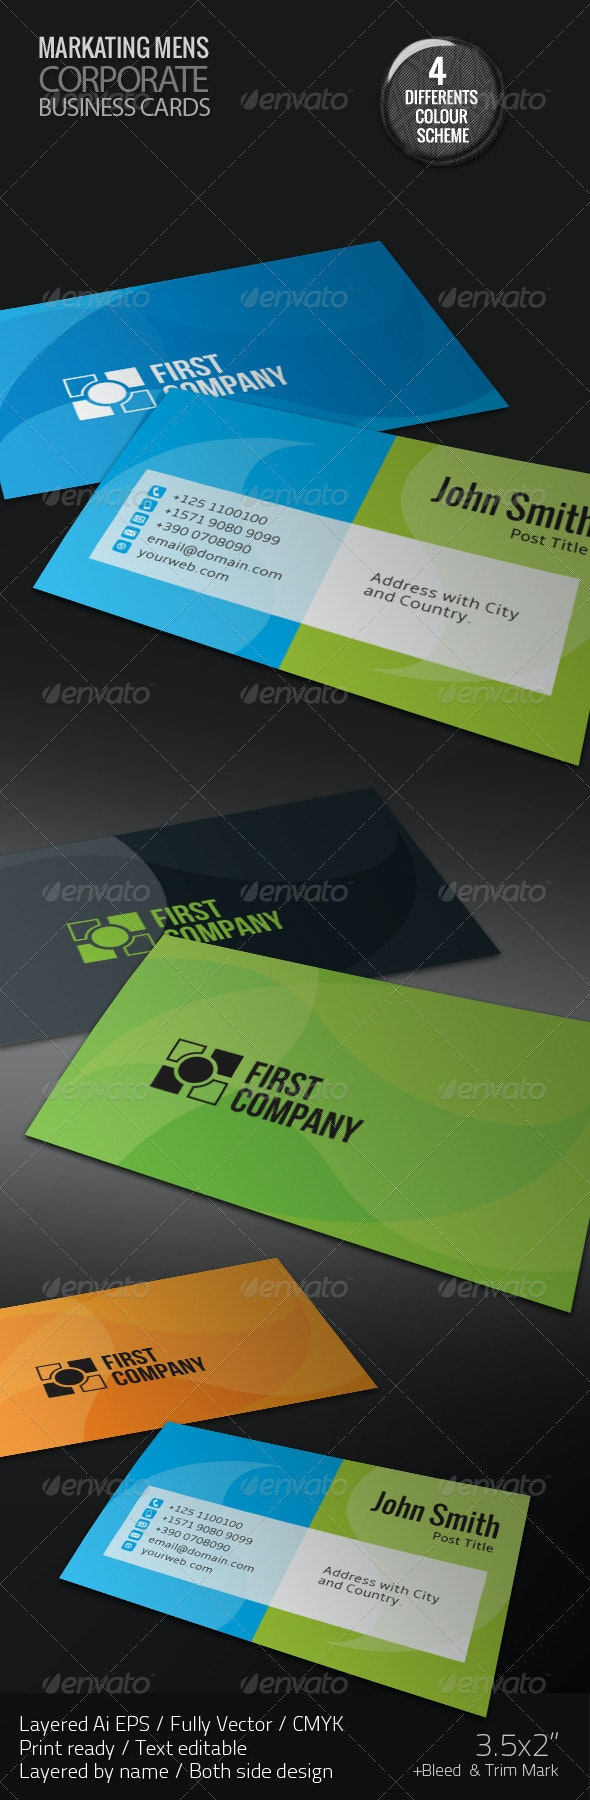 First Company Corporate Business Cards - Corporate Business Cards